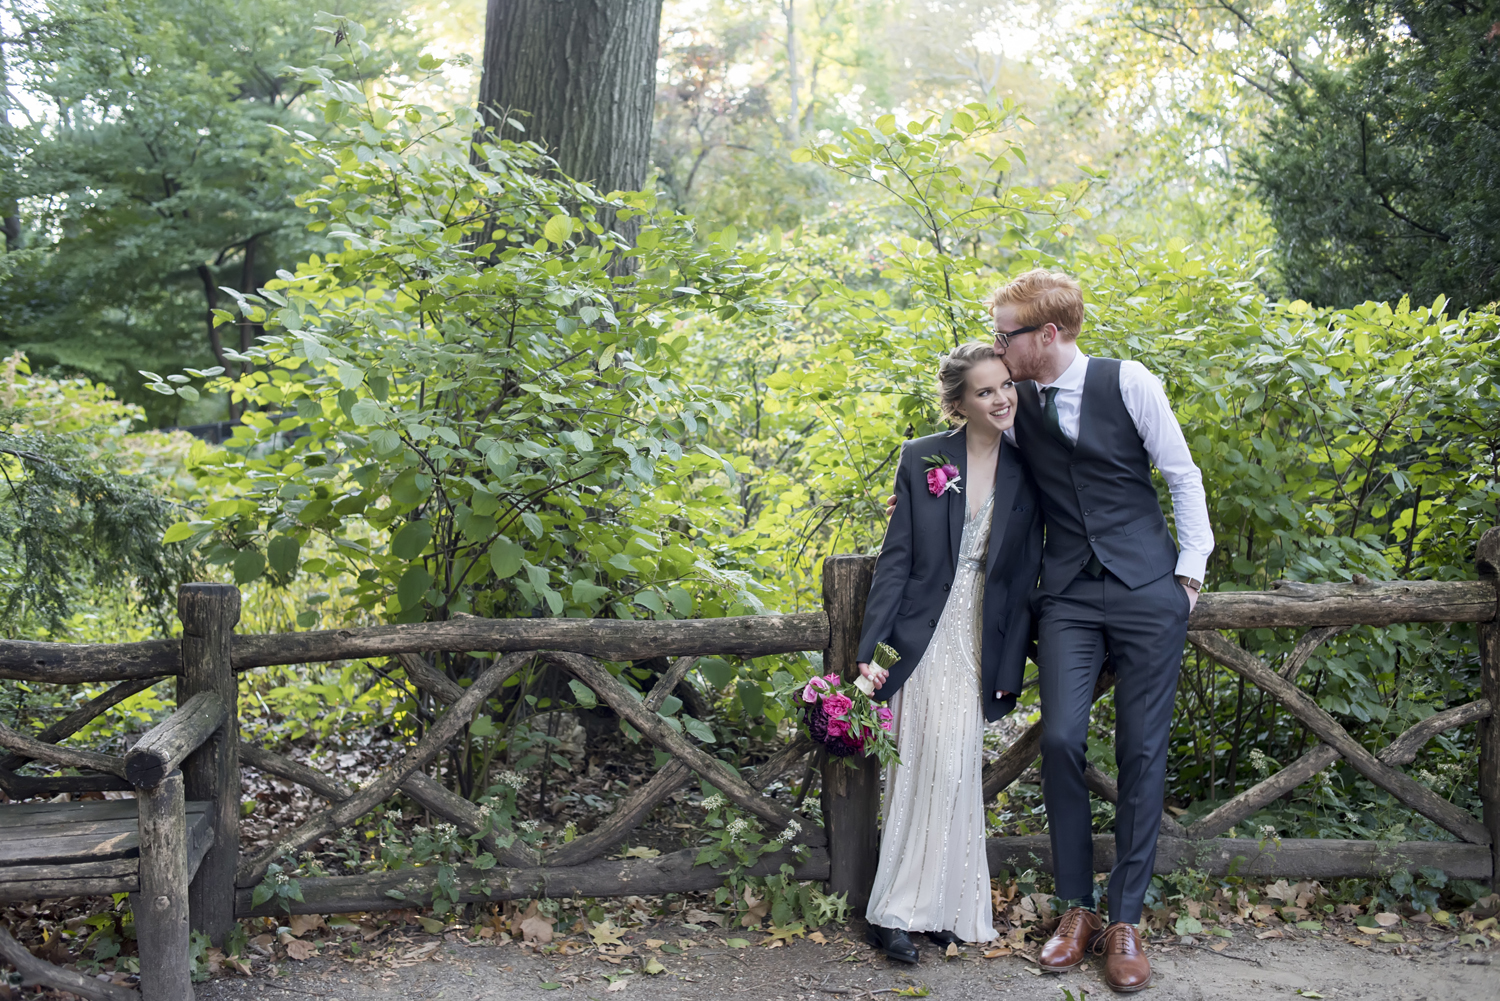 Bride and groom posing for portrait in Central Park